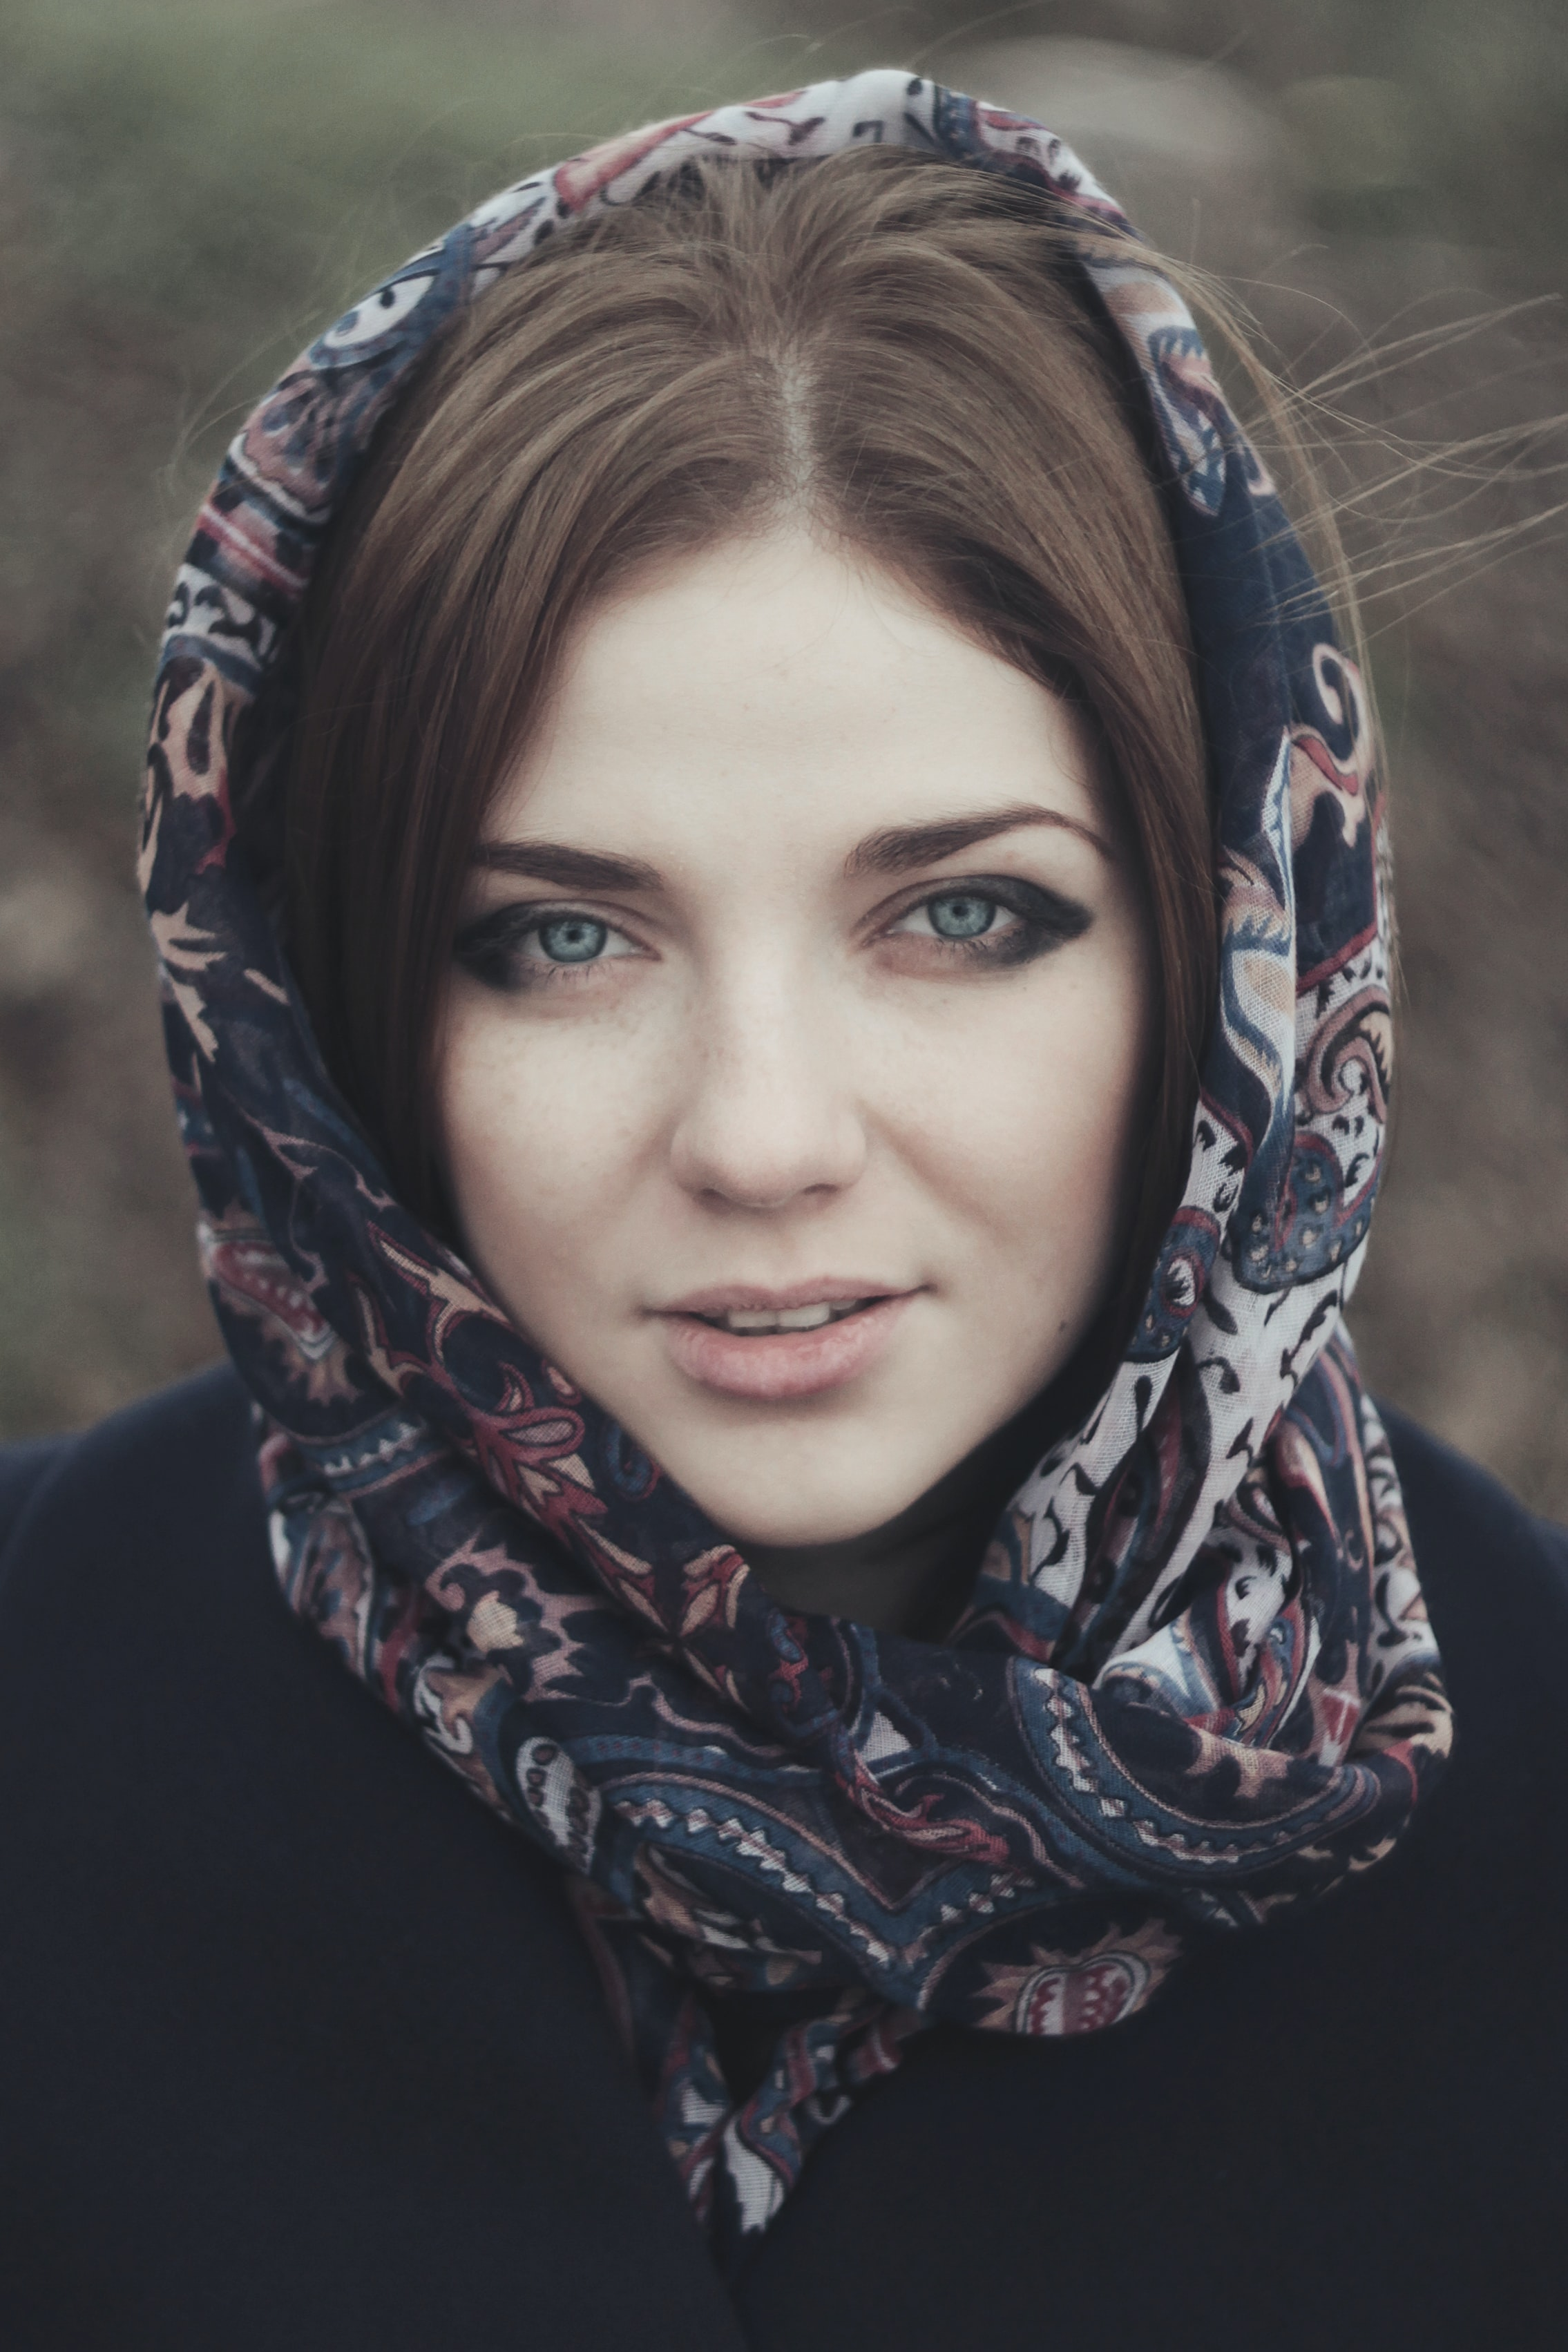 Woman with head wrapped in a scarf smiling